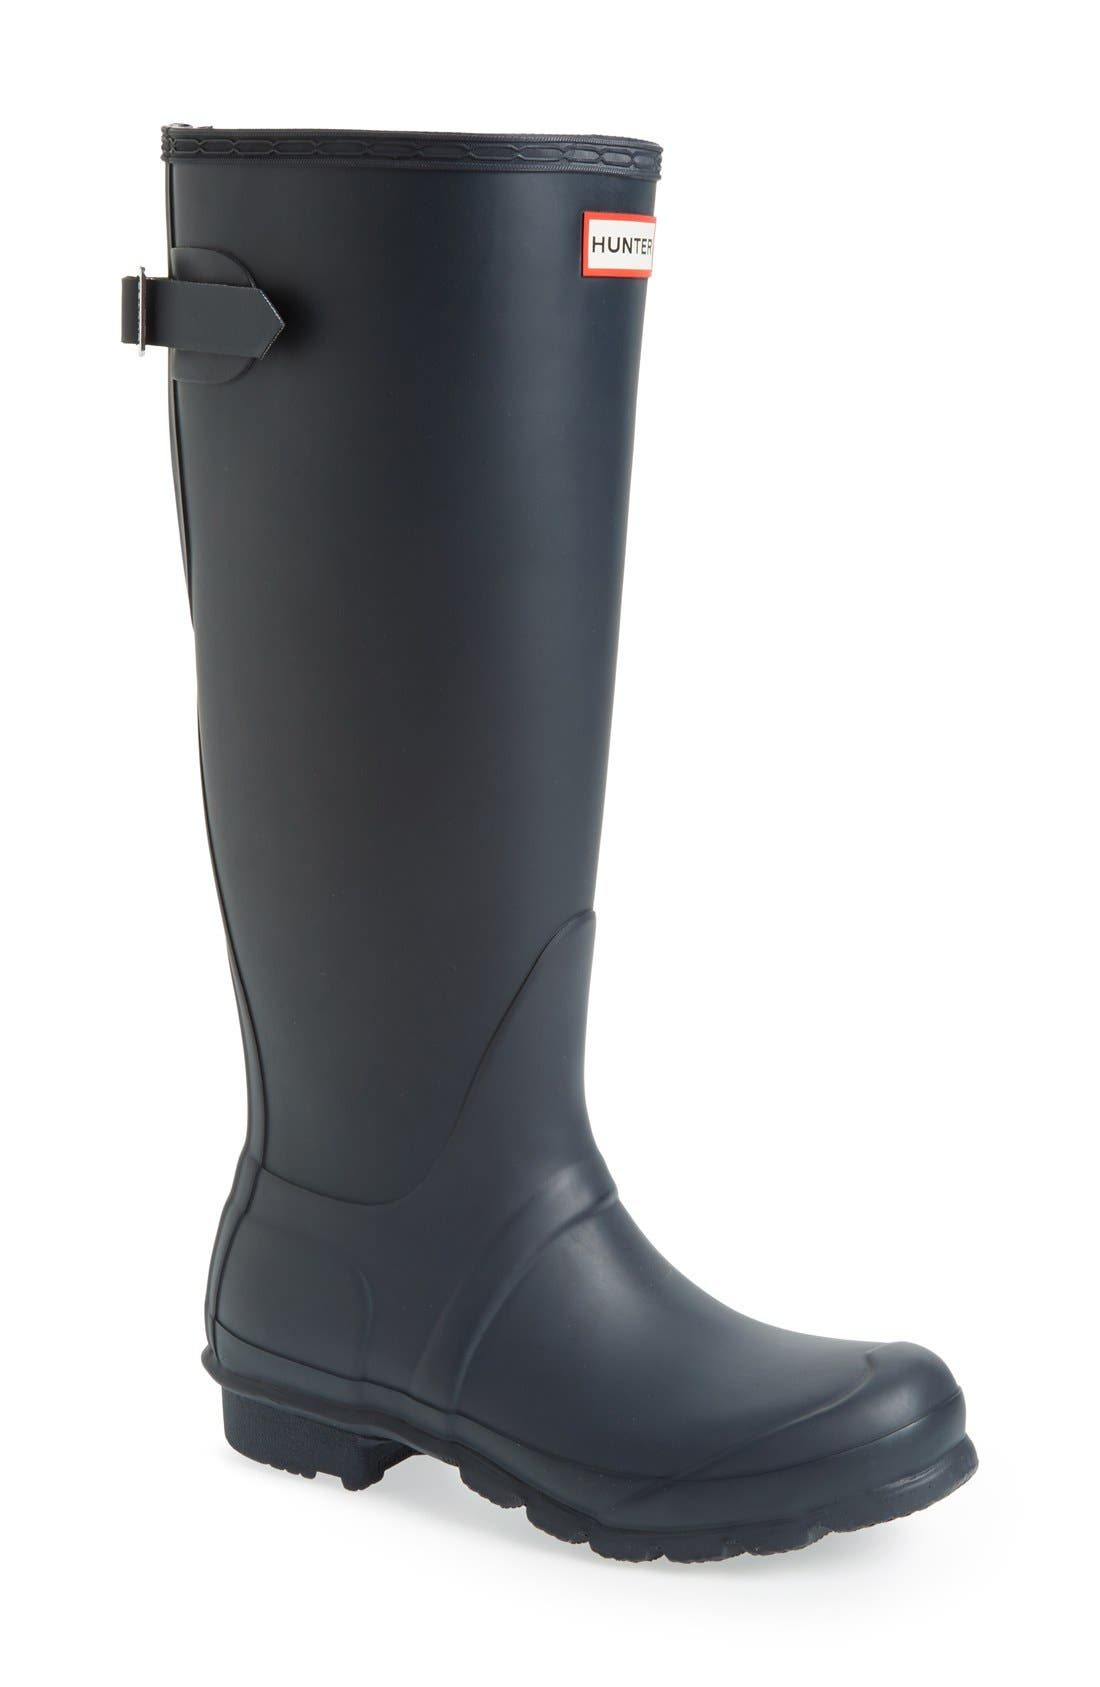 Image result for hunter boots #hunterboots